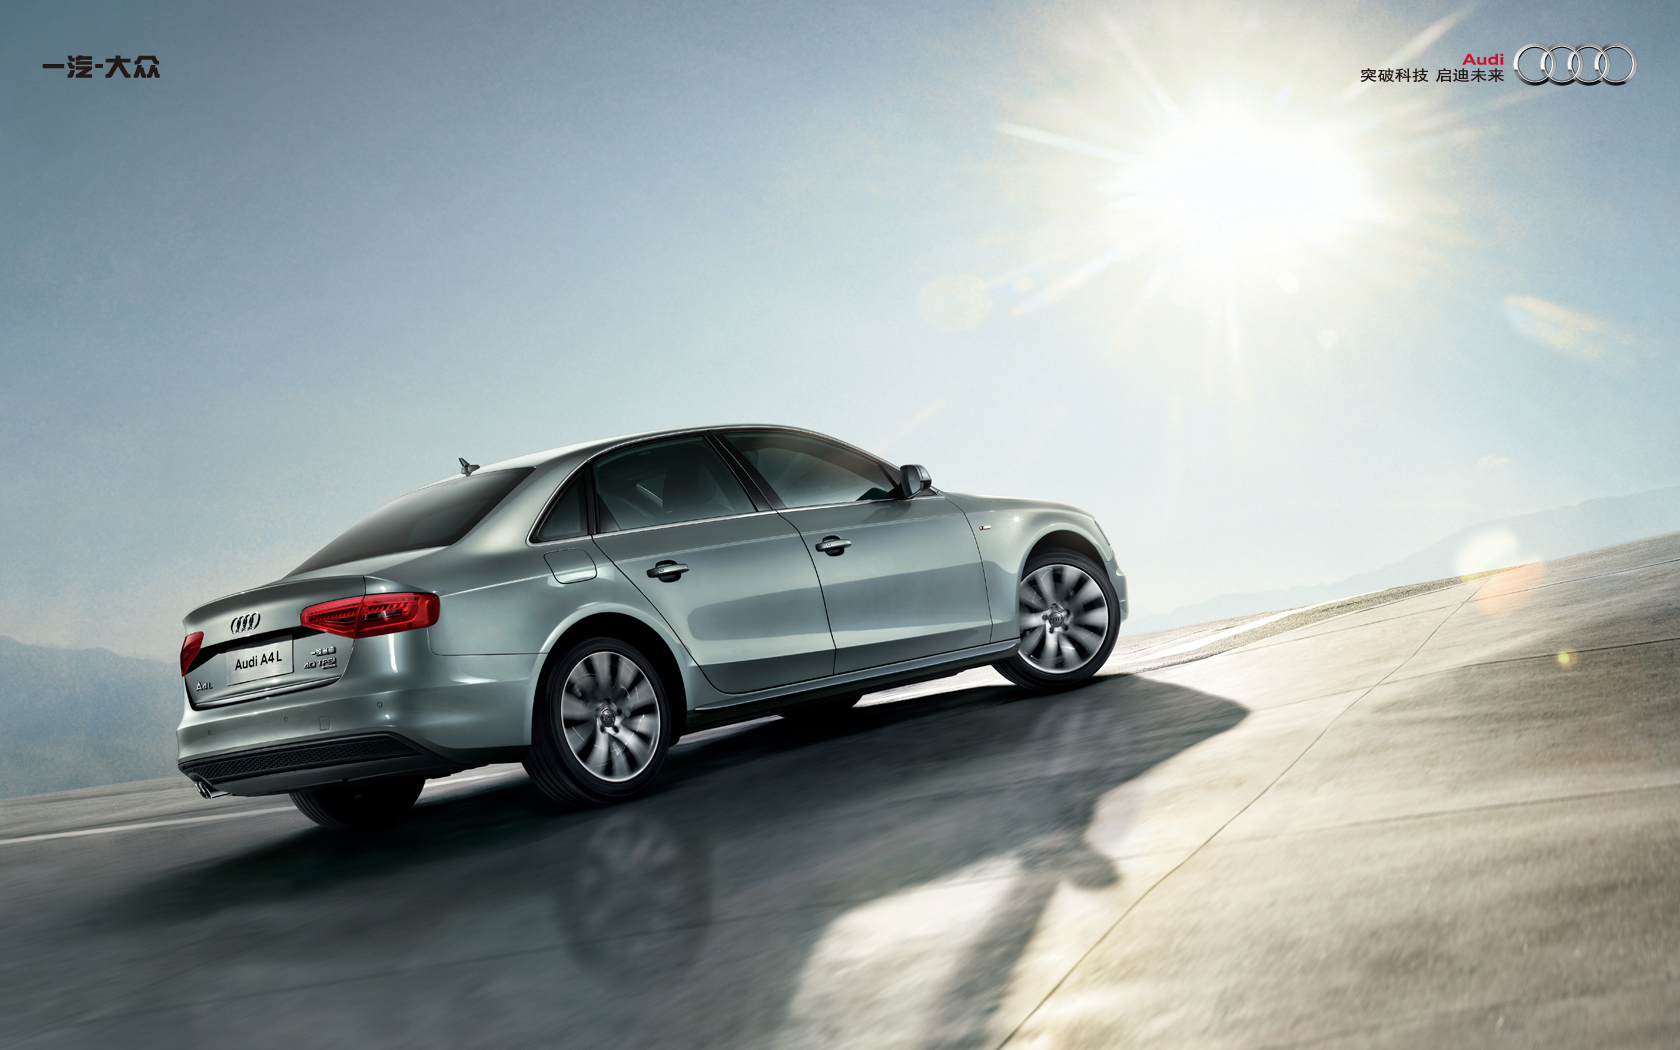 Audi A4l Specs Amp Photos 2012 2013 2014 2015 2016